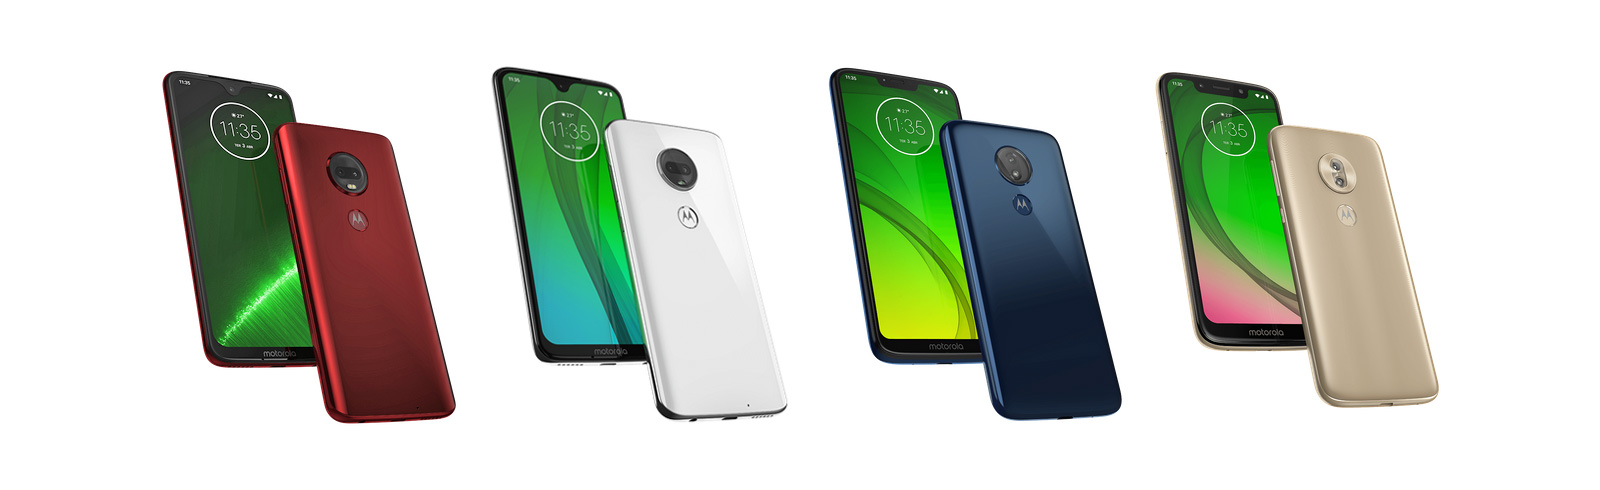 The Moto G7 series is official, includes the Moto G7, G7 Plus, G7 Power, and G7 Play